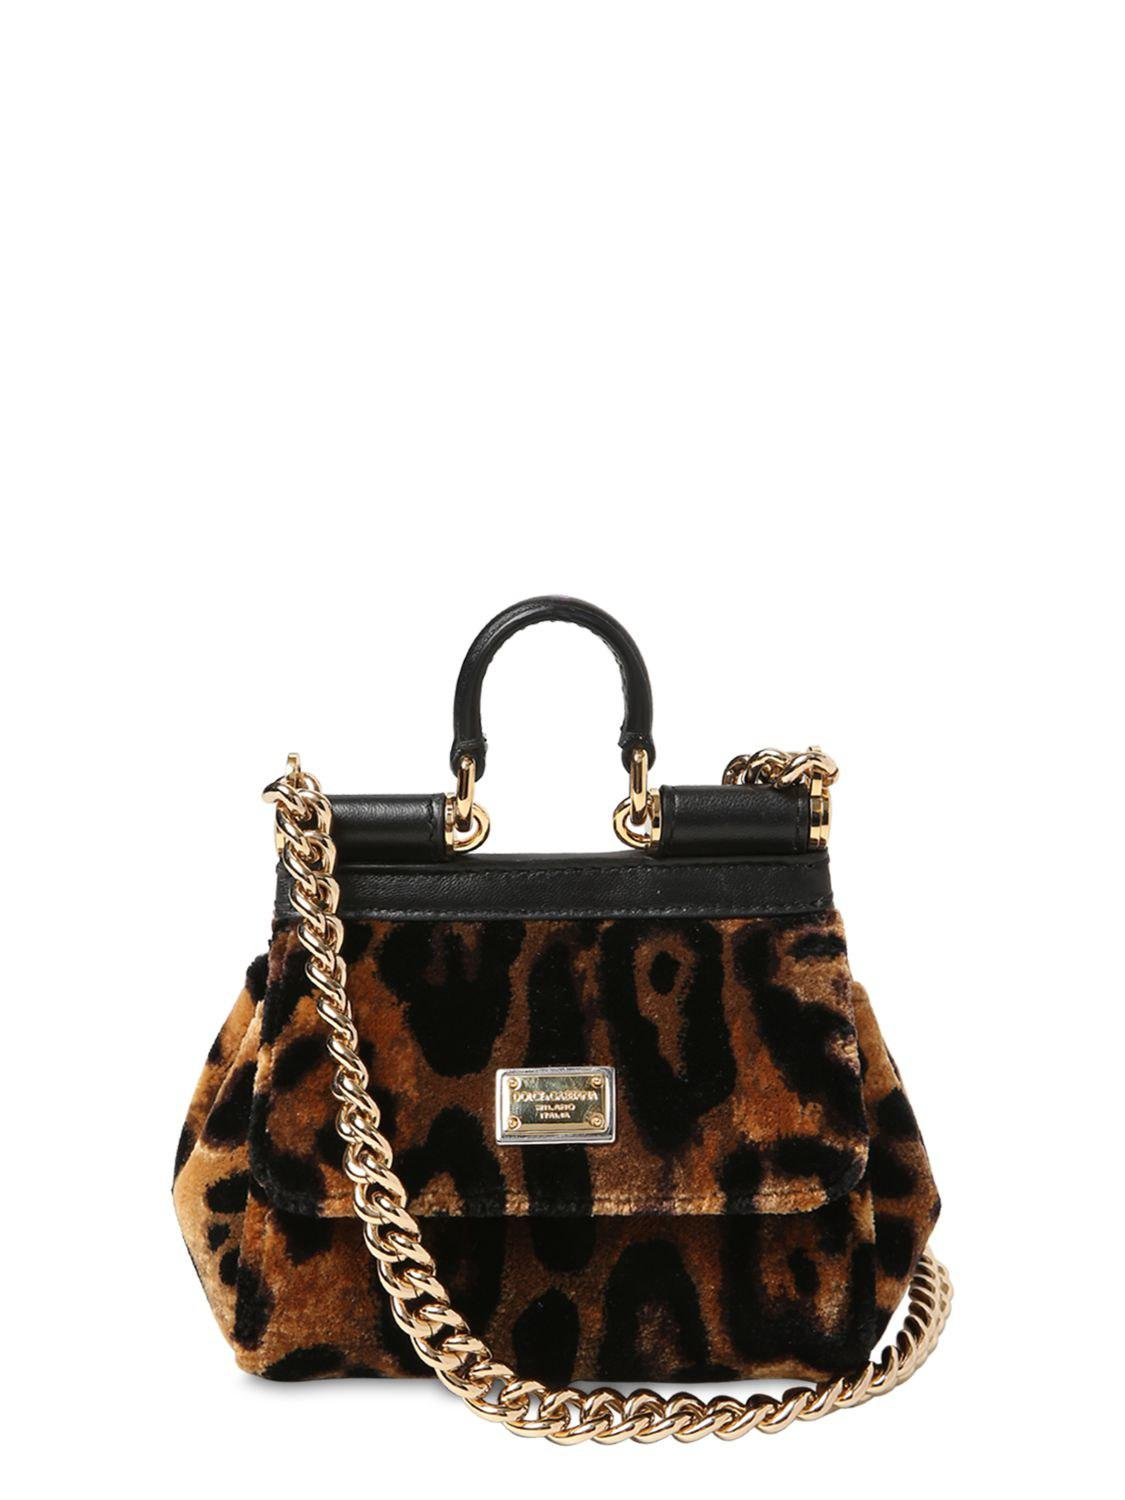 Lyst - Dolce   Gabbana Micro Sicily Leopard Print Velvet Bag in Black 6a558aa268a70